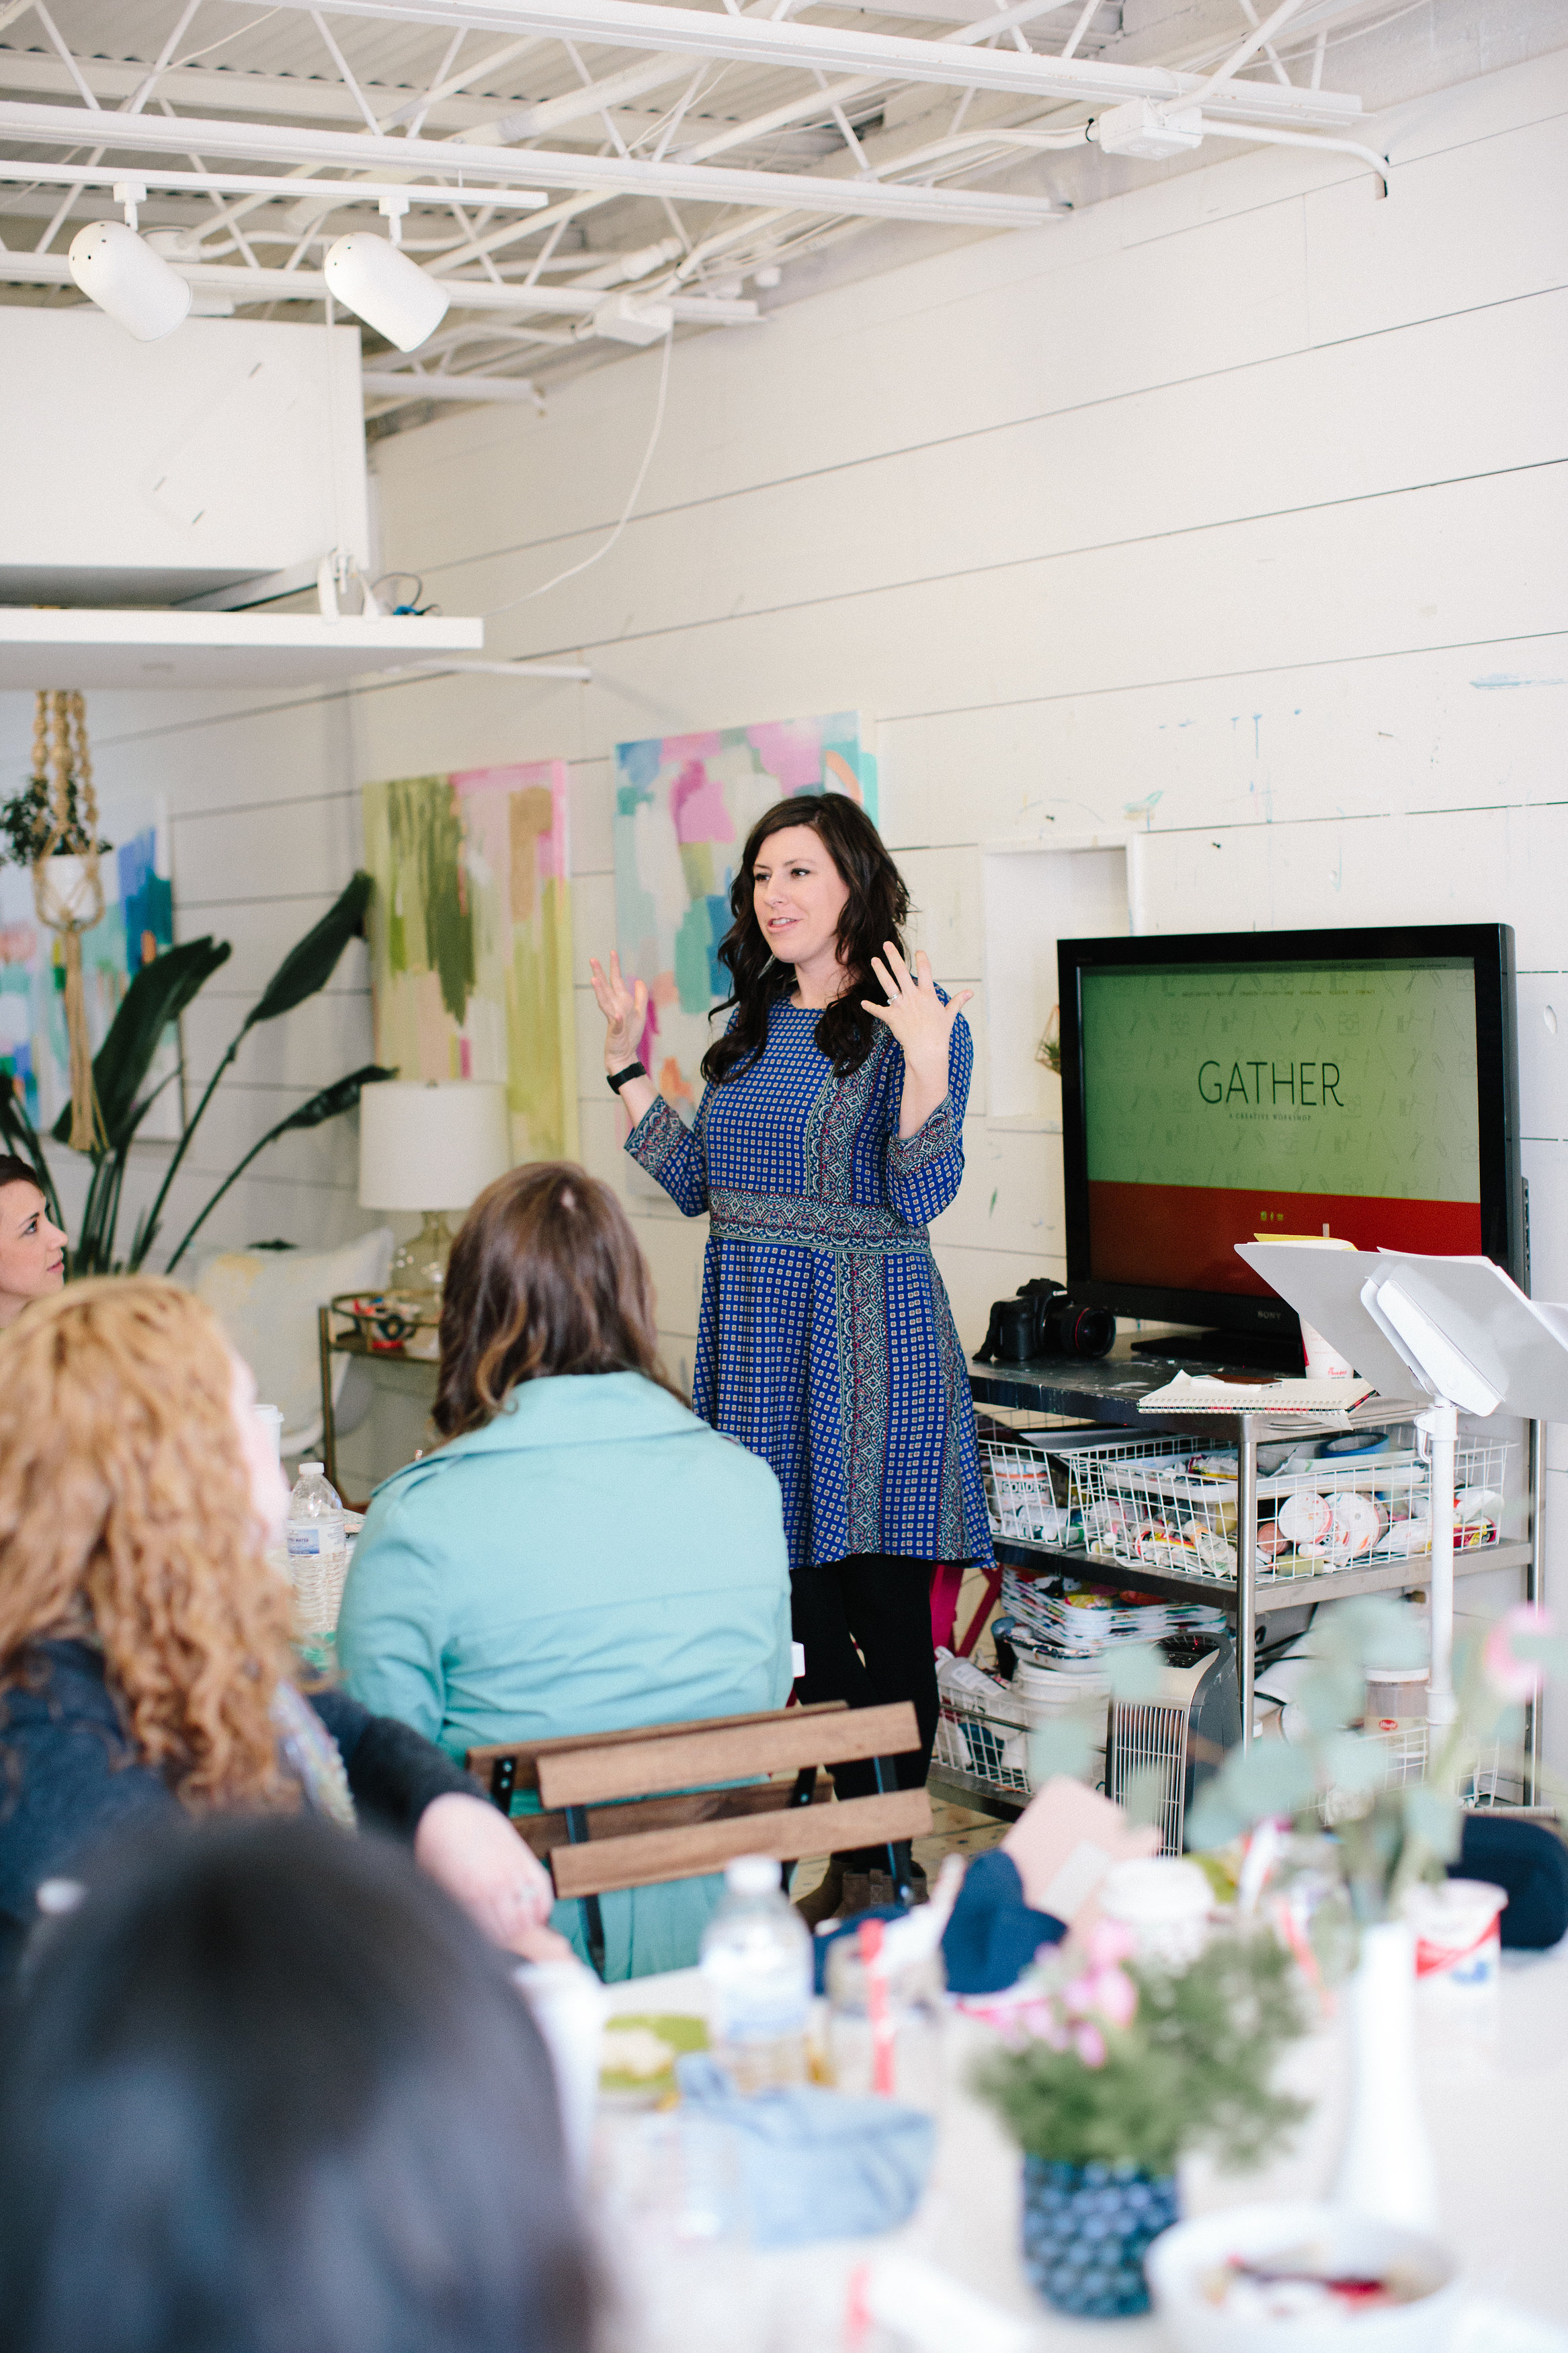 Kaitie Bryant  spoke about creativity and lifestyle.She encouraged usto make space for creativity and play. Takeaway: set aside time each week to explore.  Find beautiful things that set meon fire.